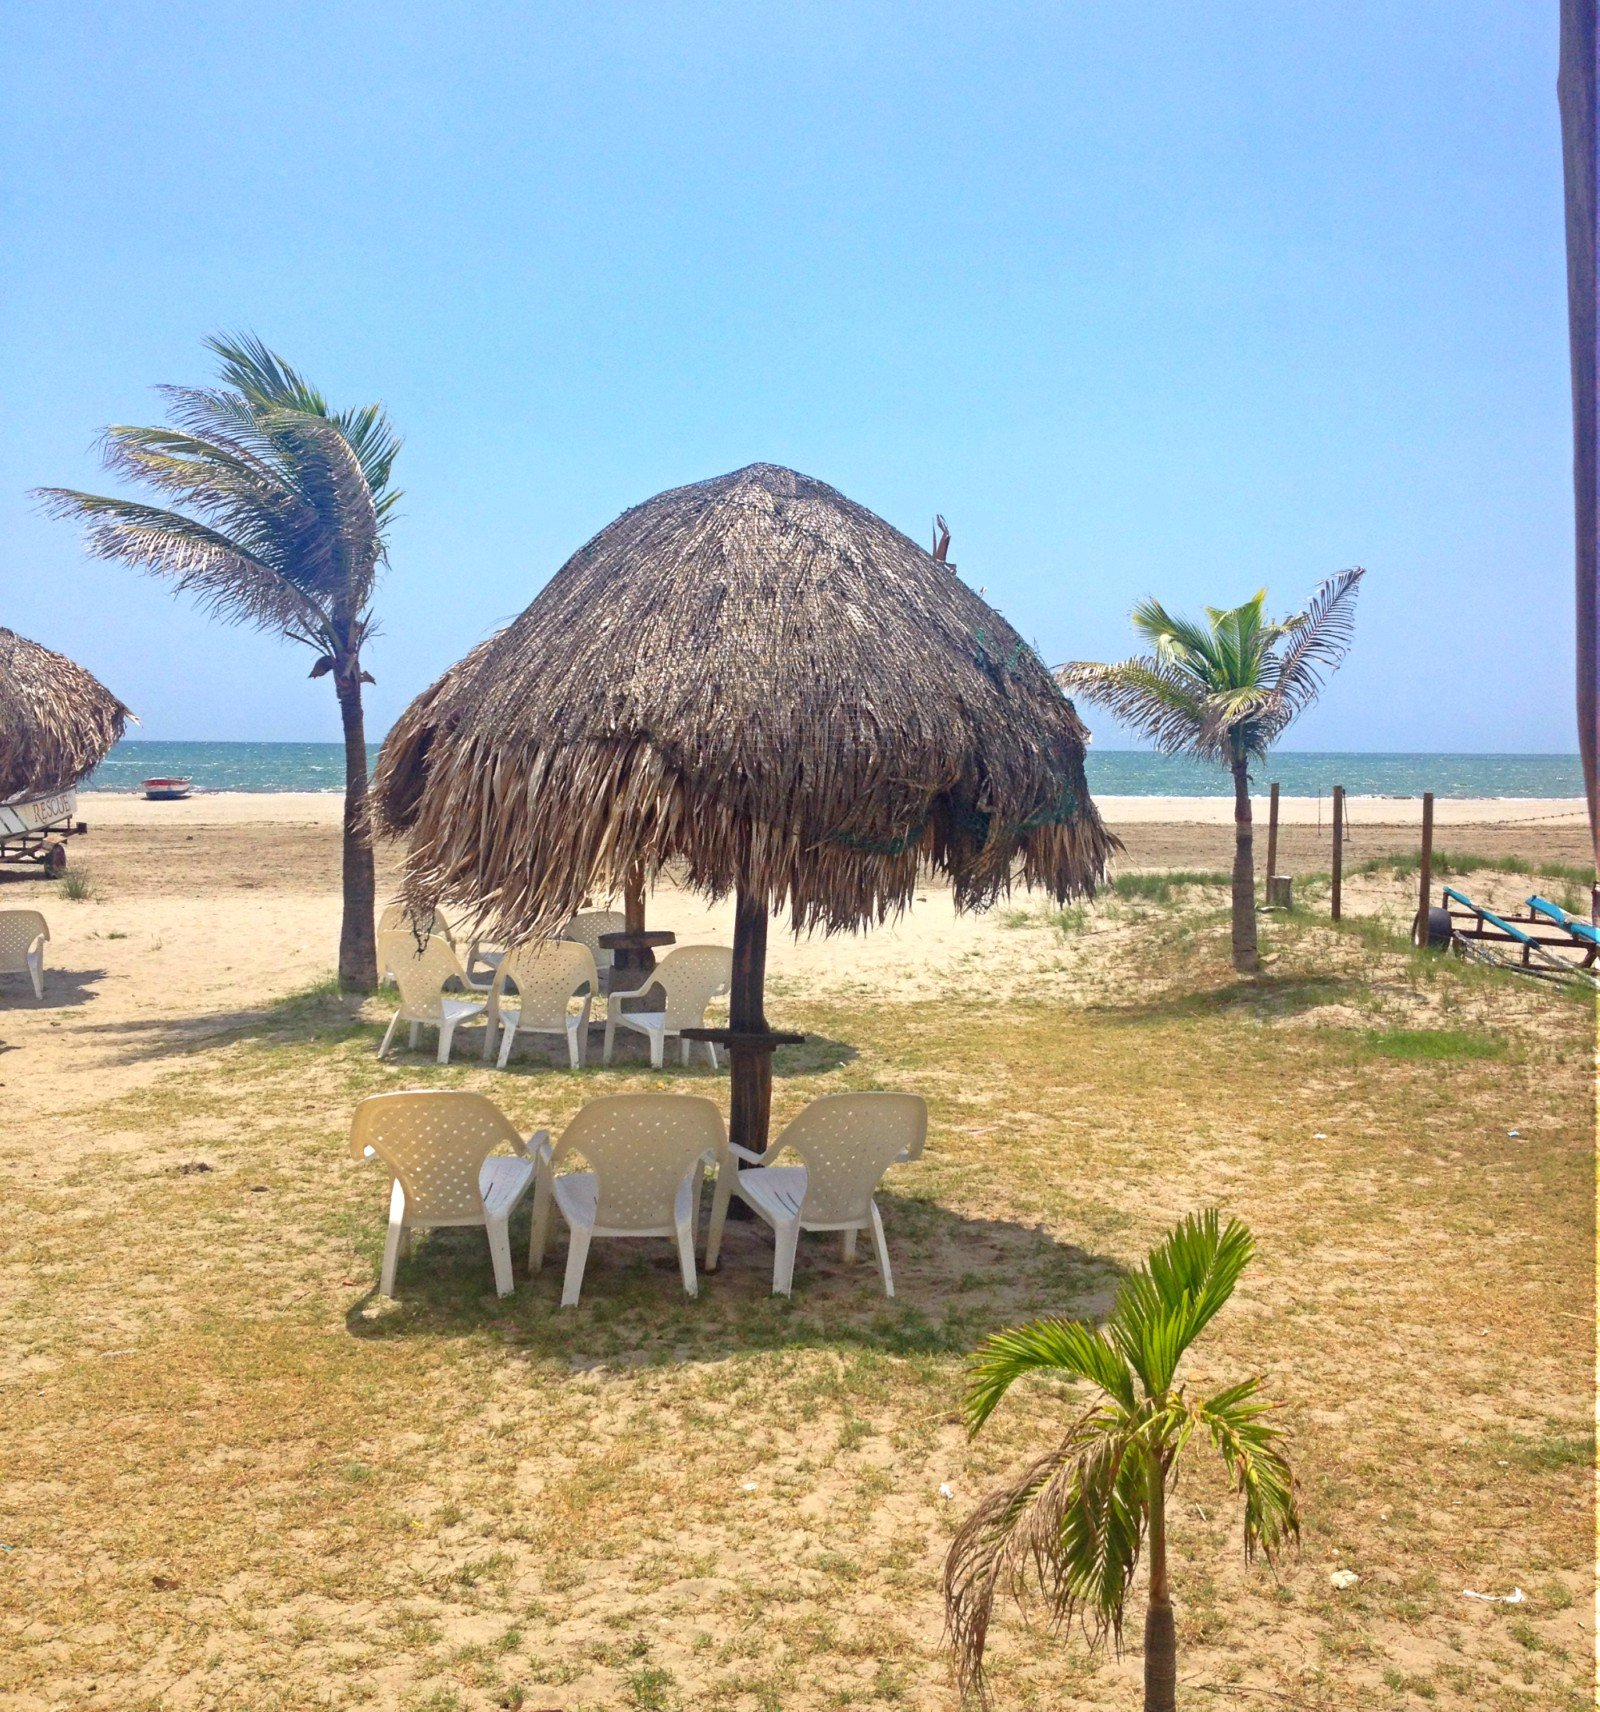 La Boquilla, a small fishing town on the Caribbean, outside of Cartagena, Colombia.